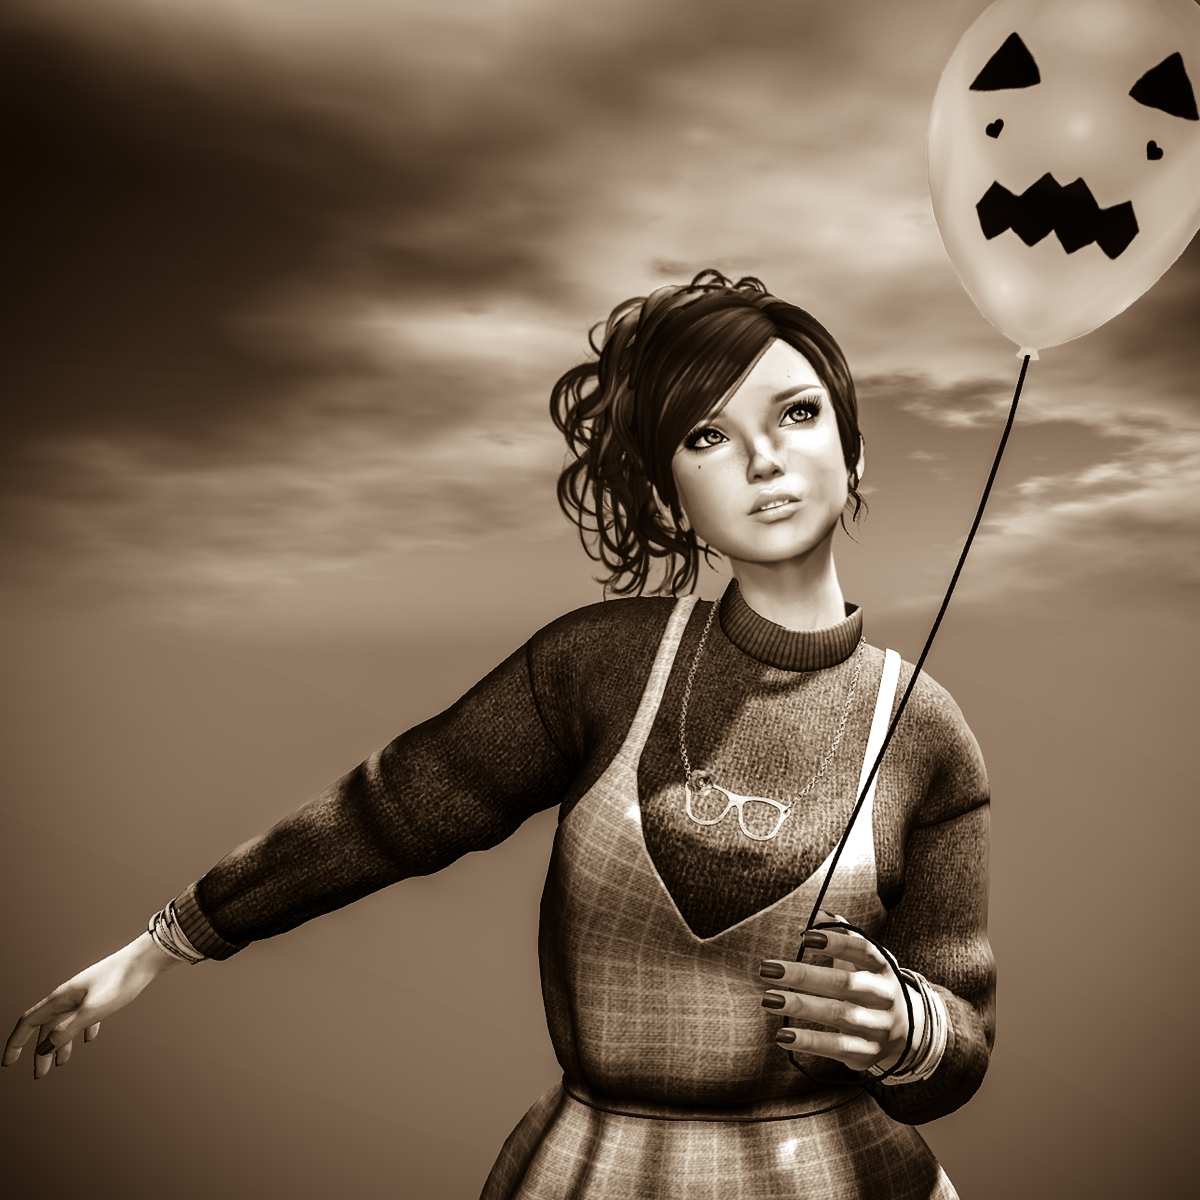 Q: How scary can I be for Halloween? A: Notvery!